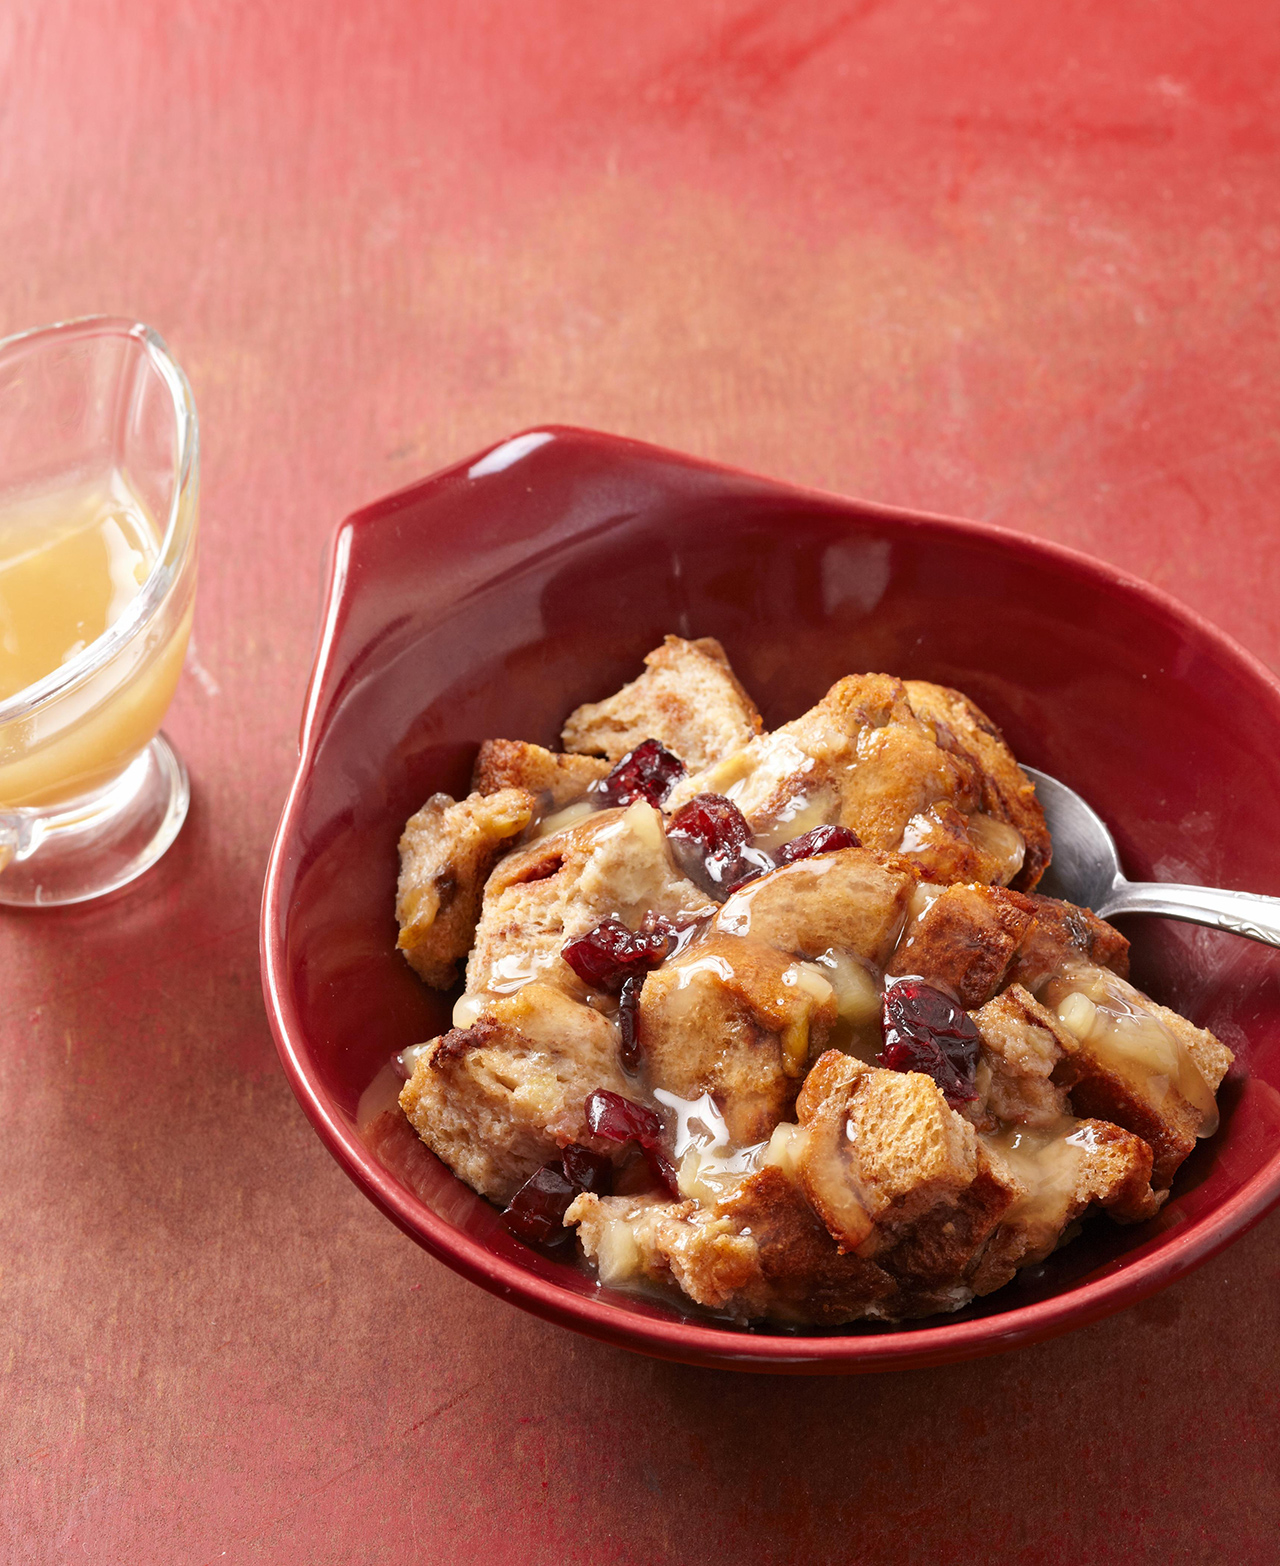 Cranberry-Banana Bread Pudding with Honey-Ginger Sauce